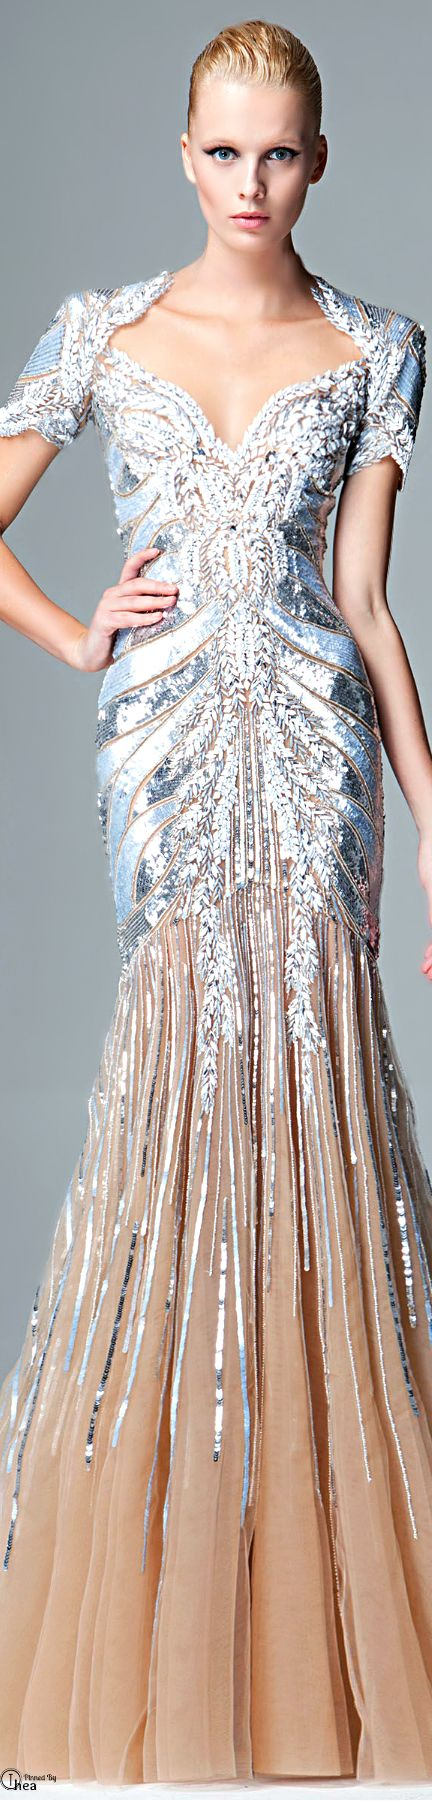 Zuhair Murad ● FW 2014-15 jeweled gown